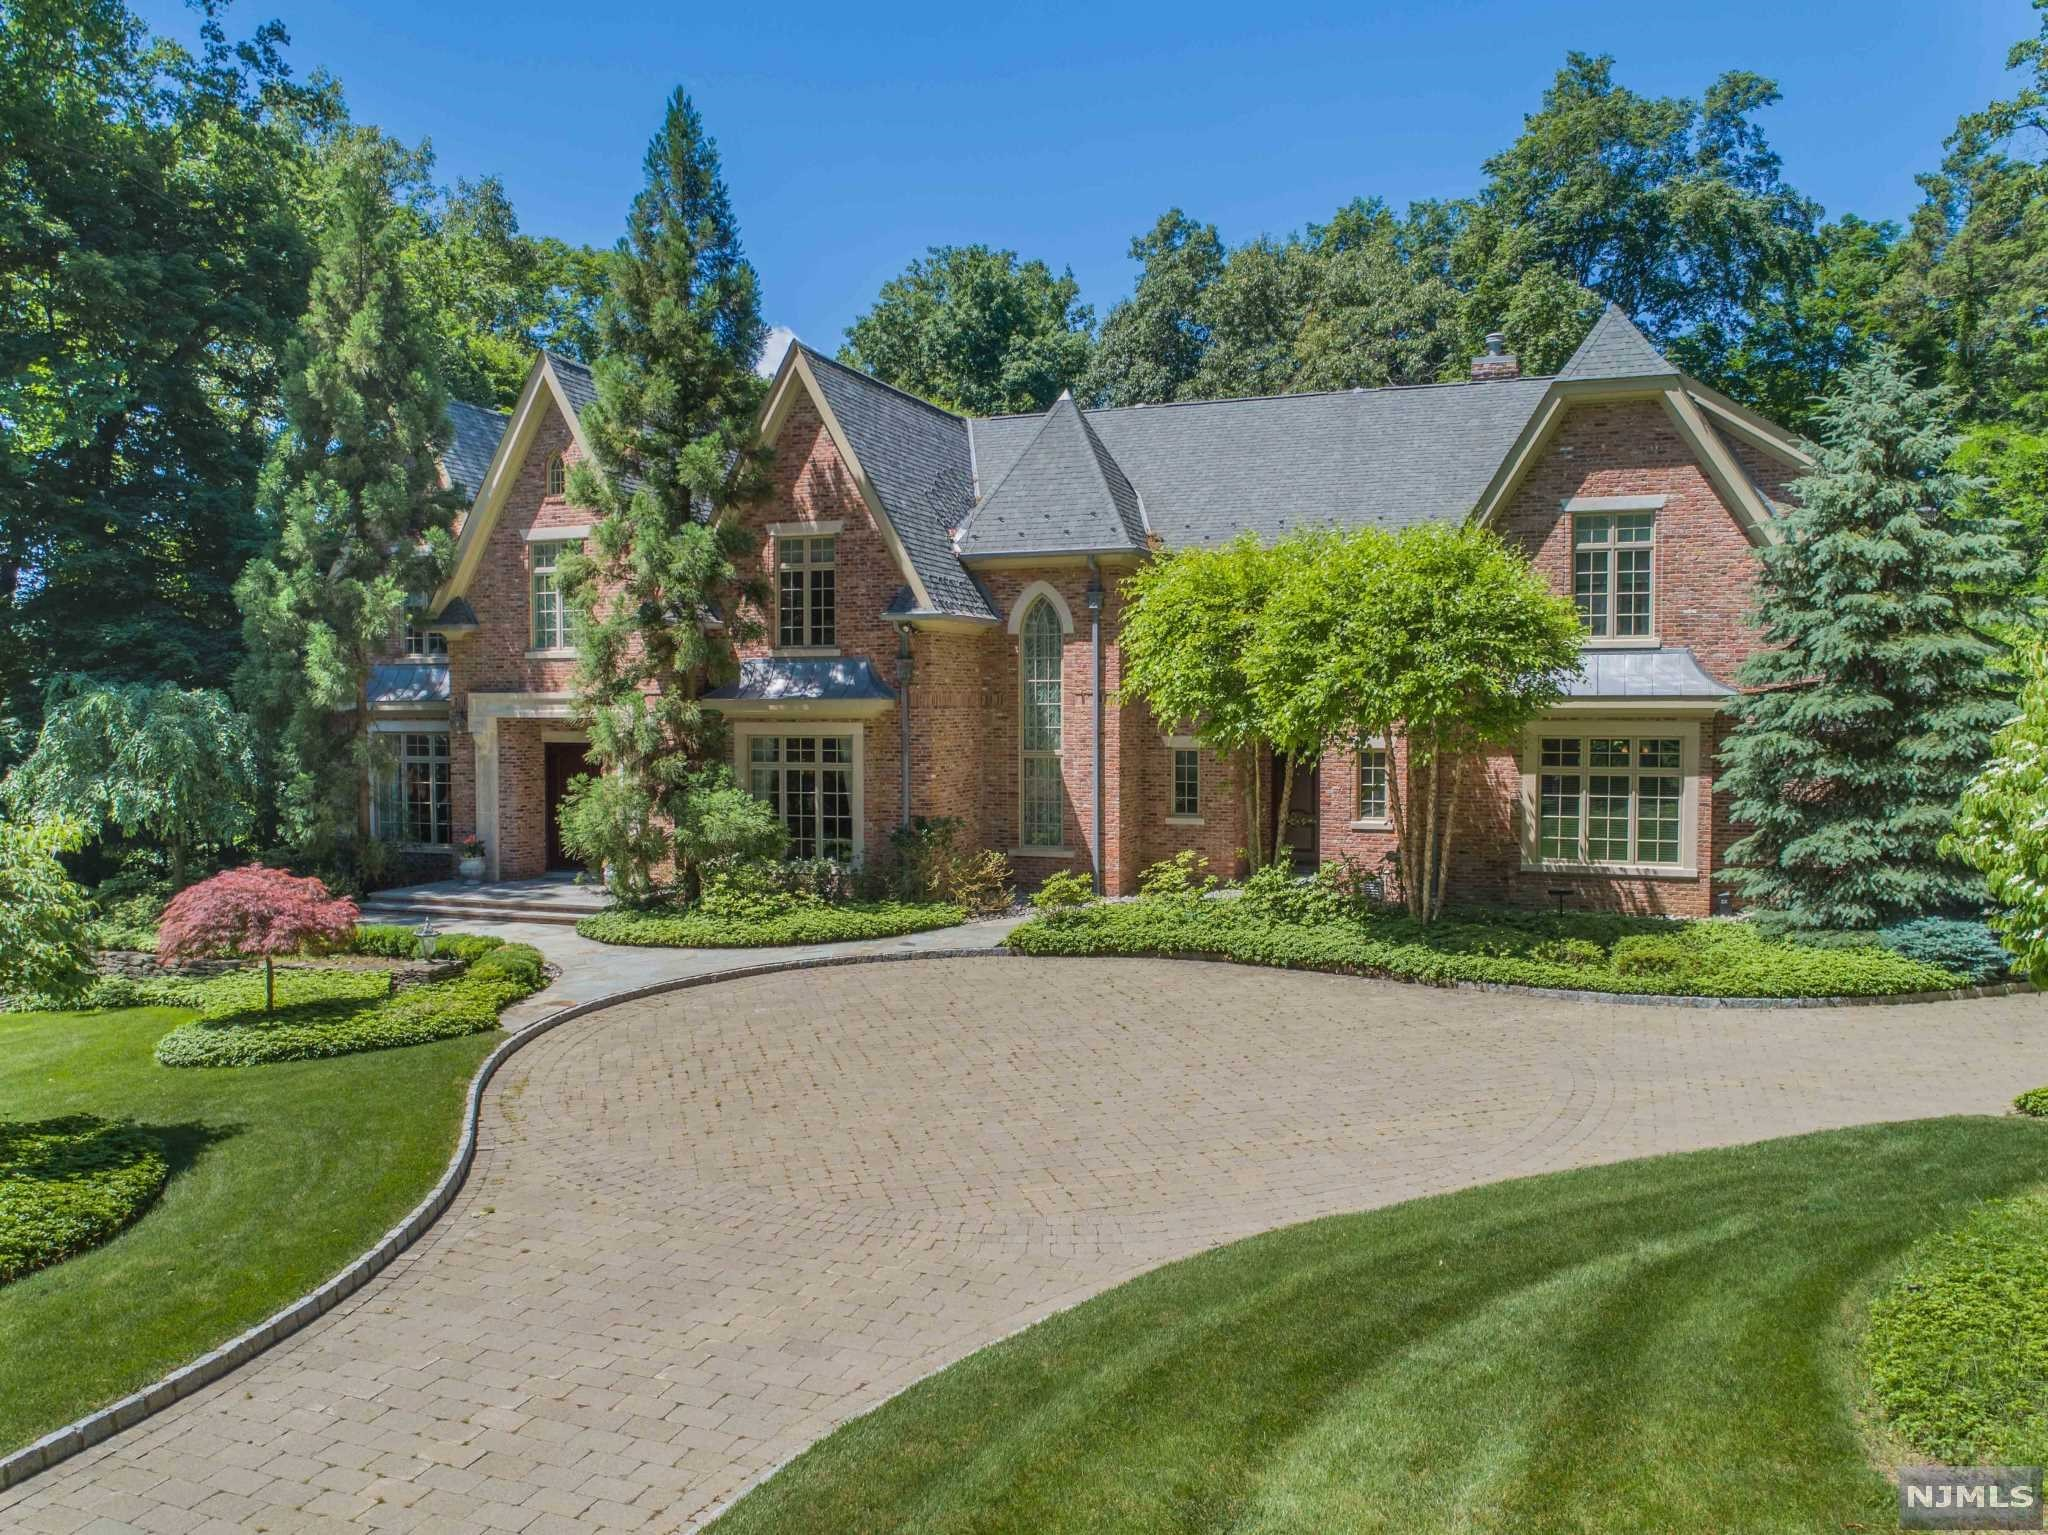 15 Woodfield Lane, a Luxury Home for Sale in Saddle River ...